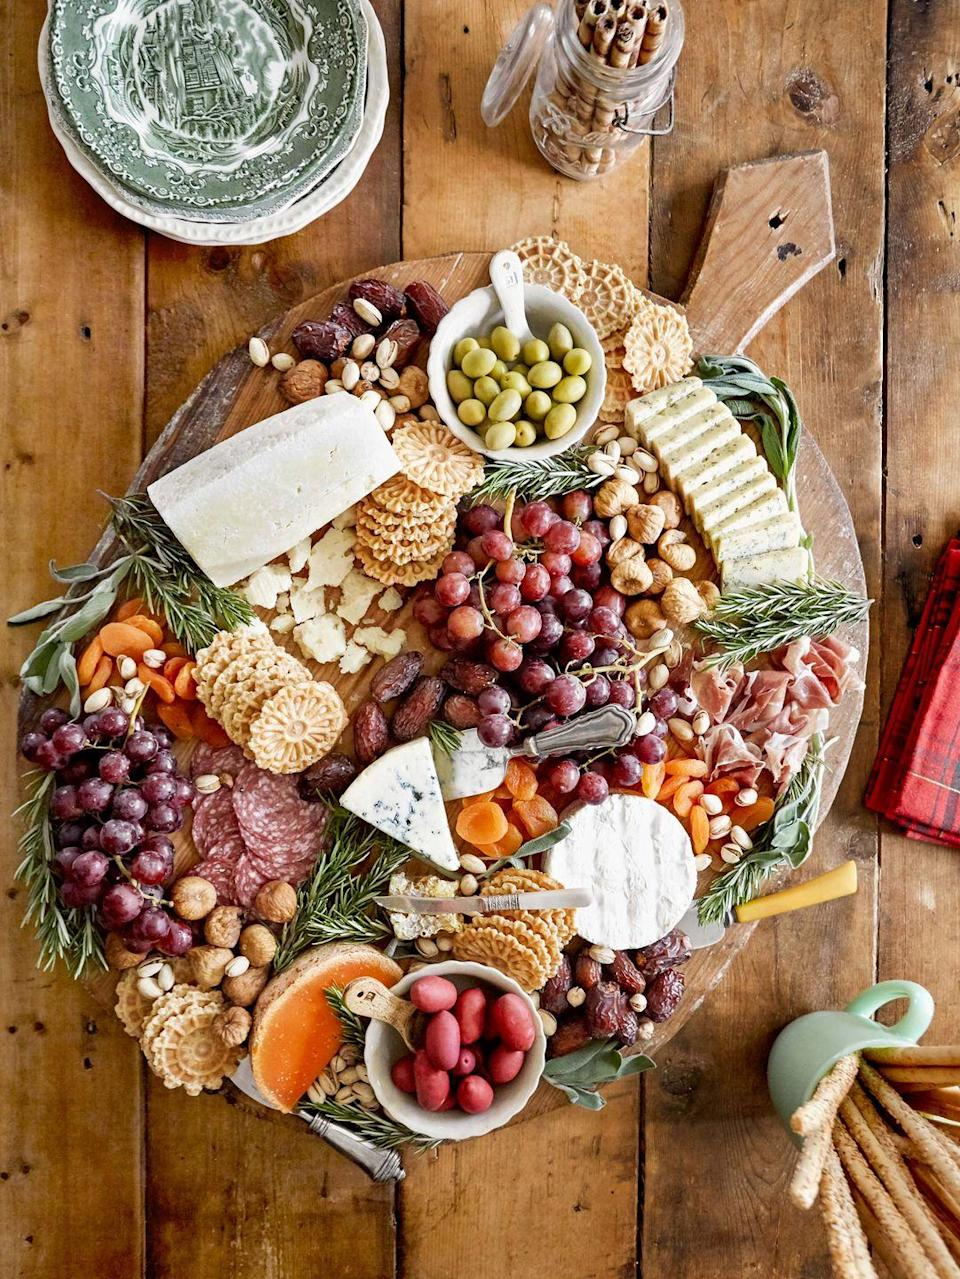 """<p>Set this out around lunchtime and let the family graze while waiting for dinner.</p><p><strong><a href=""""https://www.countryliving.com/food-drinks/a34931277/cheeseboard-how-to/"""" rel=""""nofollow noopener"""" target=""""_blank"""" data-ylk=""""slk:Get the recipe"""" class=""""link rapid-noclick-resp"""">Get the recipe</a>.</strong> </p>"""